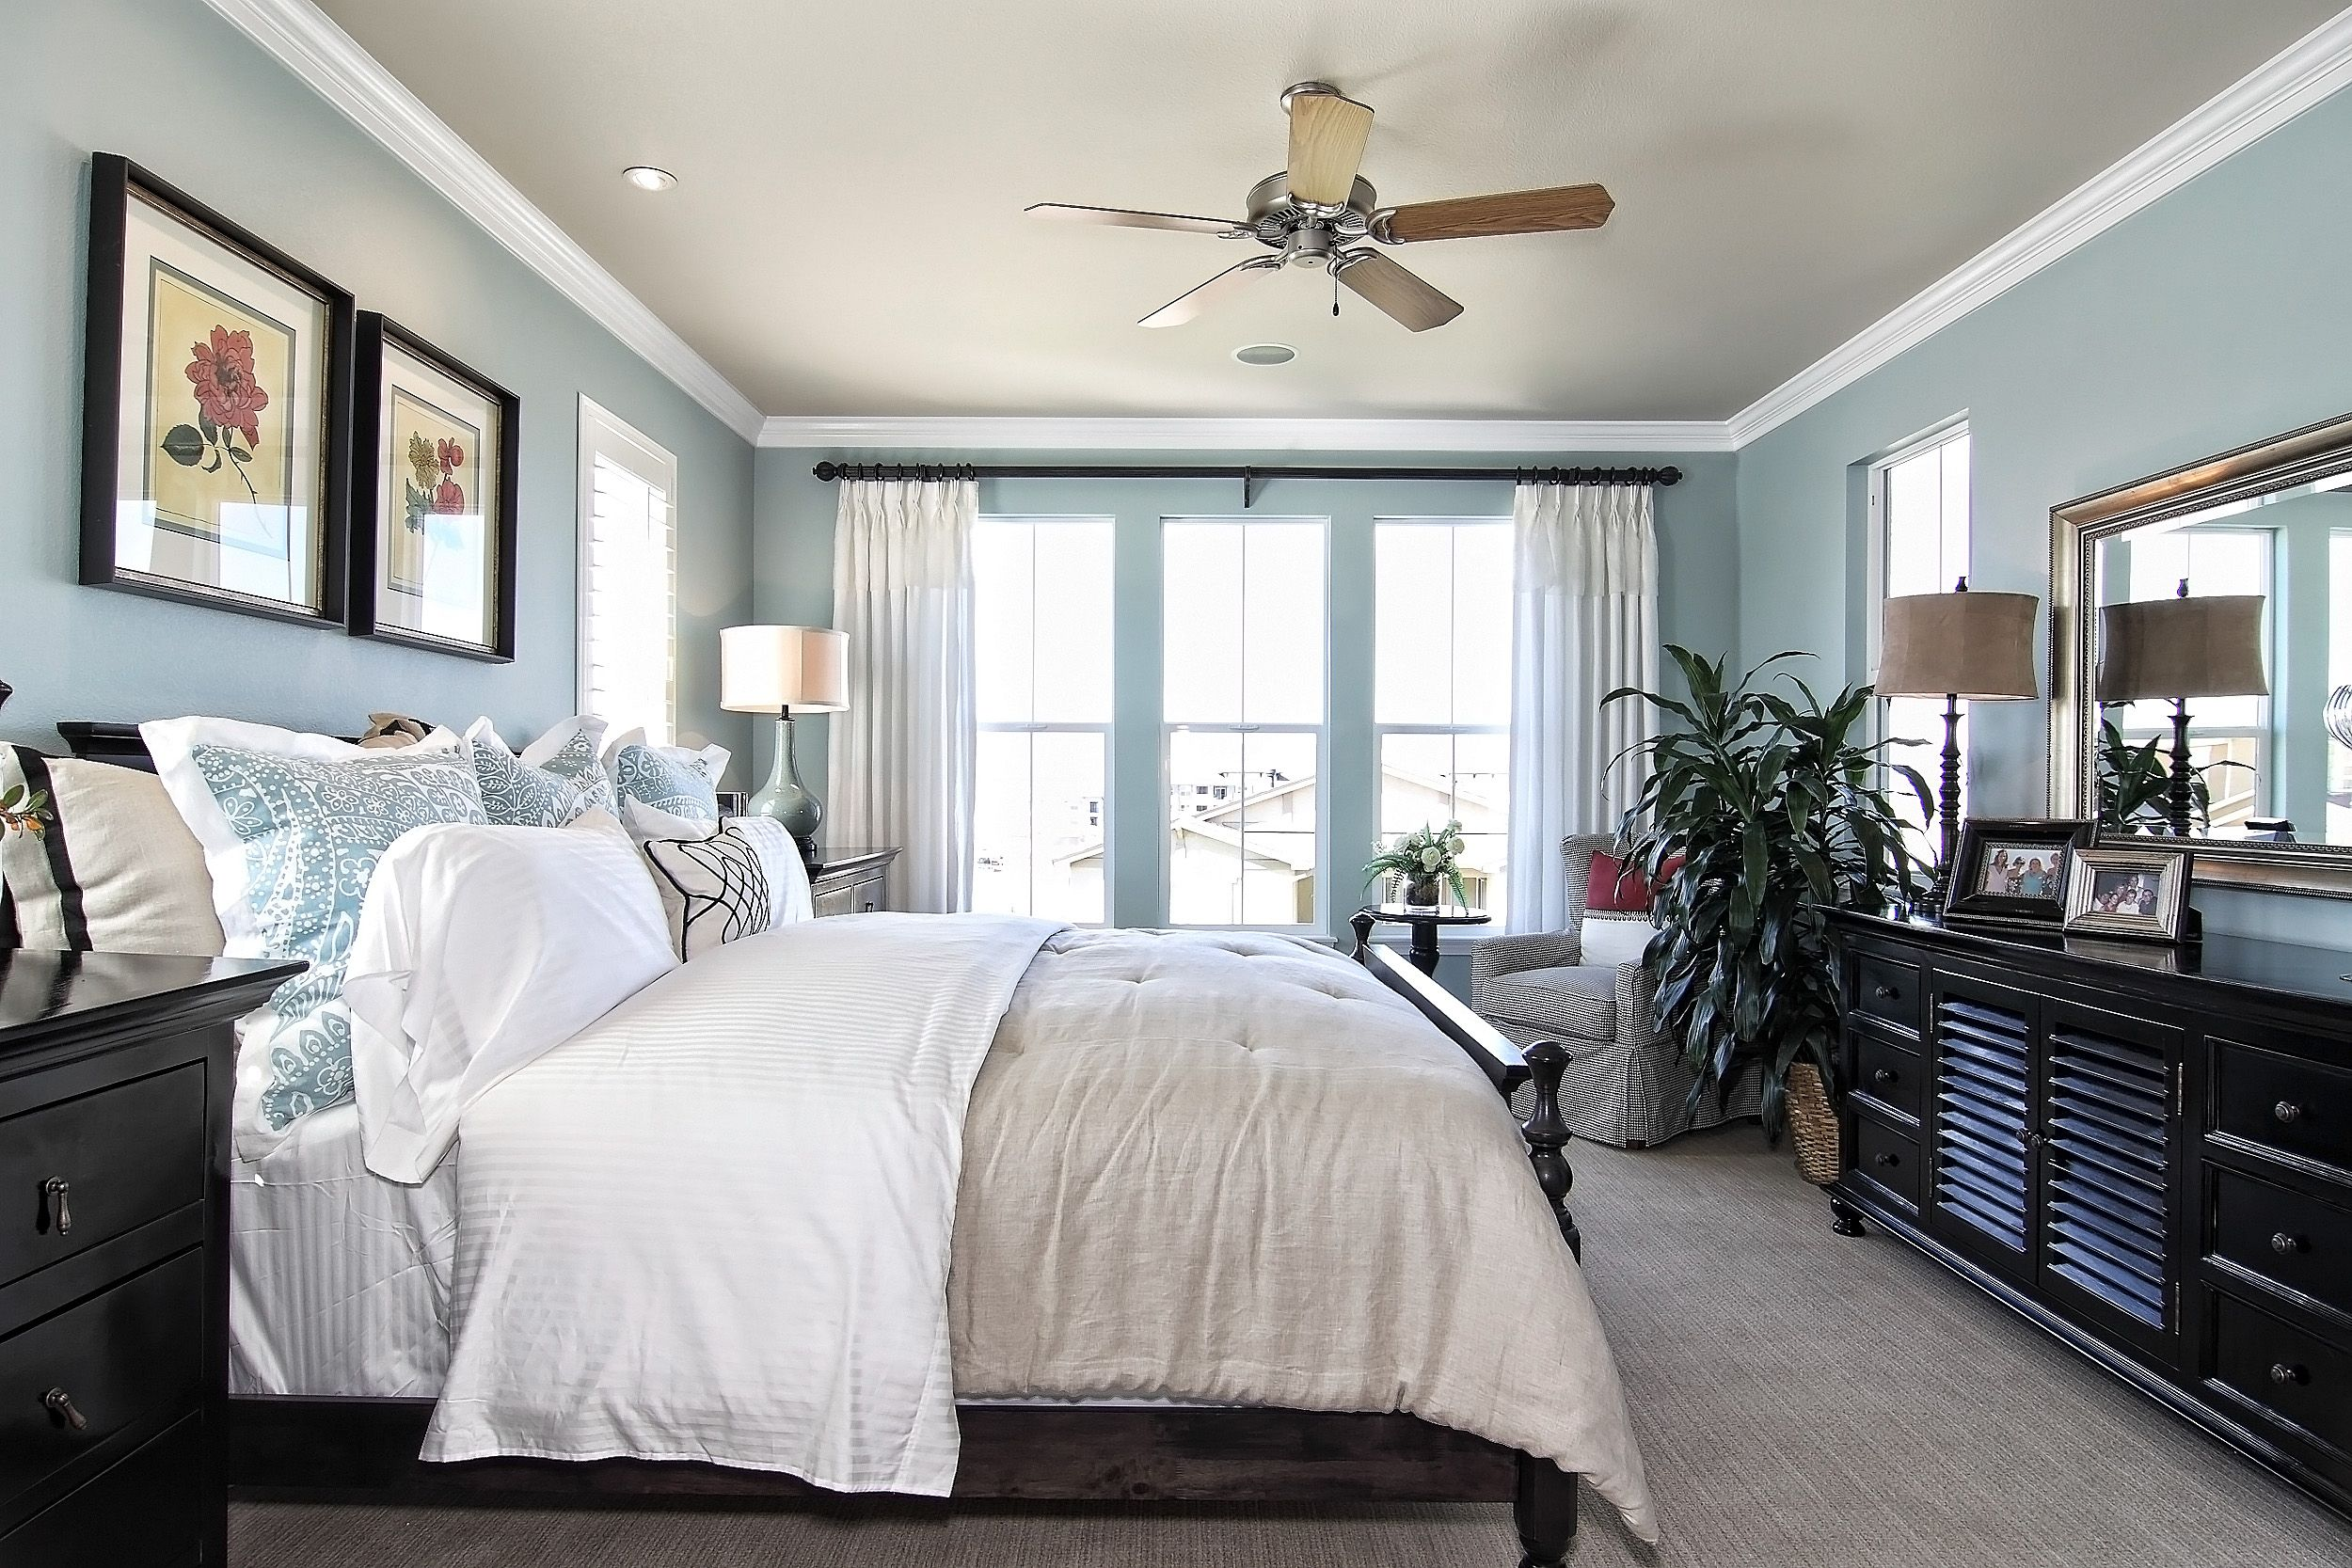 Master Bedroom Light Blue White And Black Relaxing Kellerhomes Home Bedroom